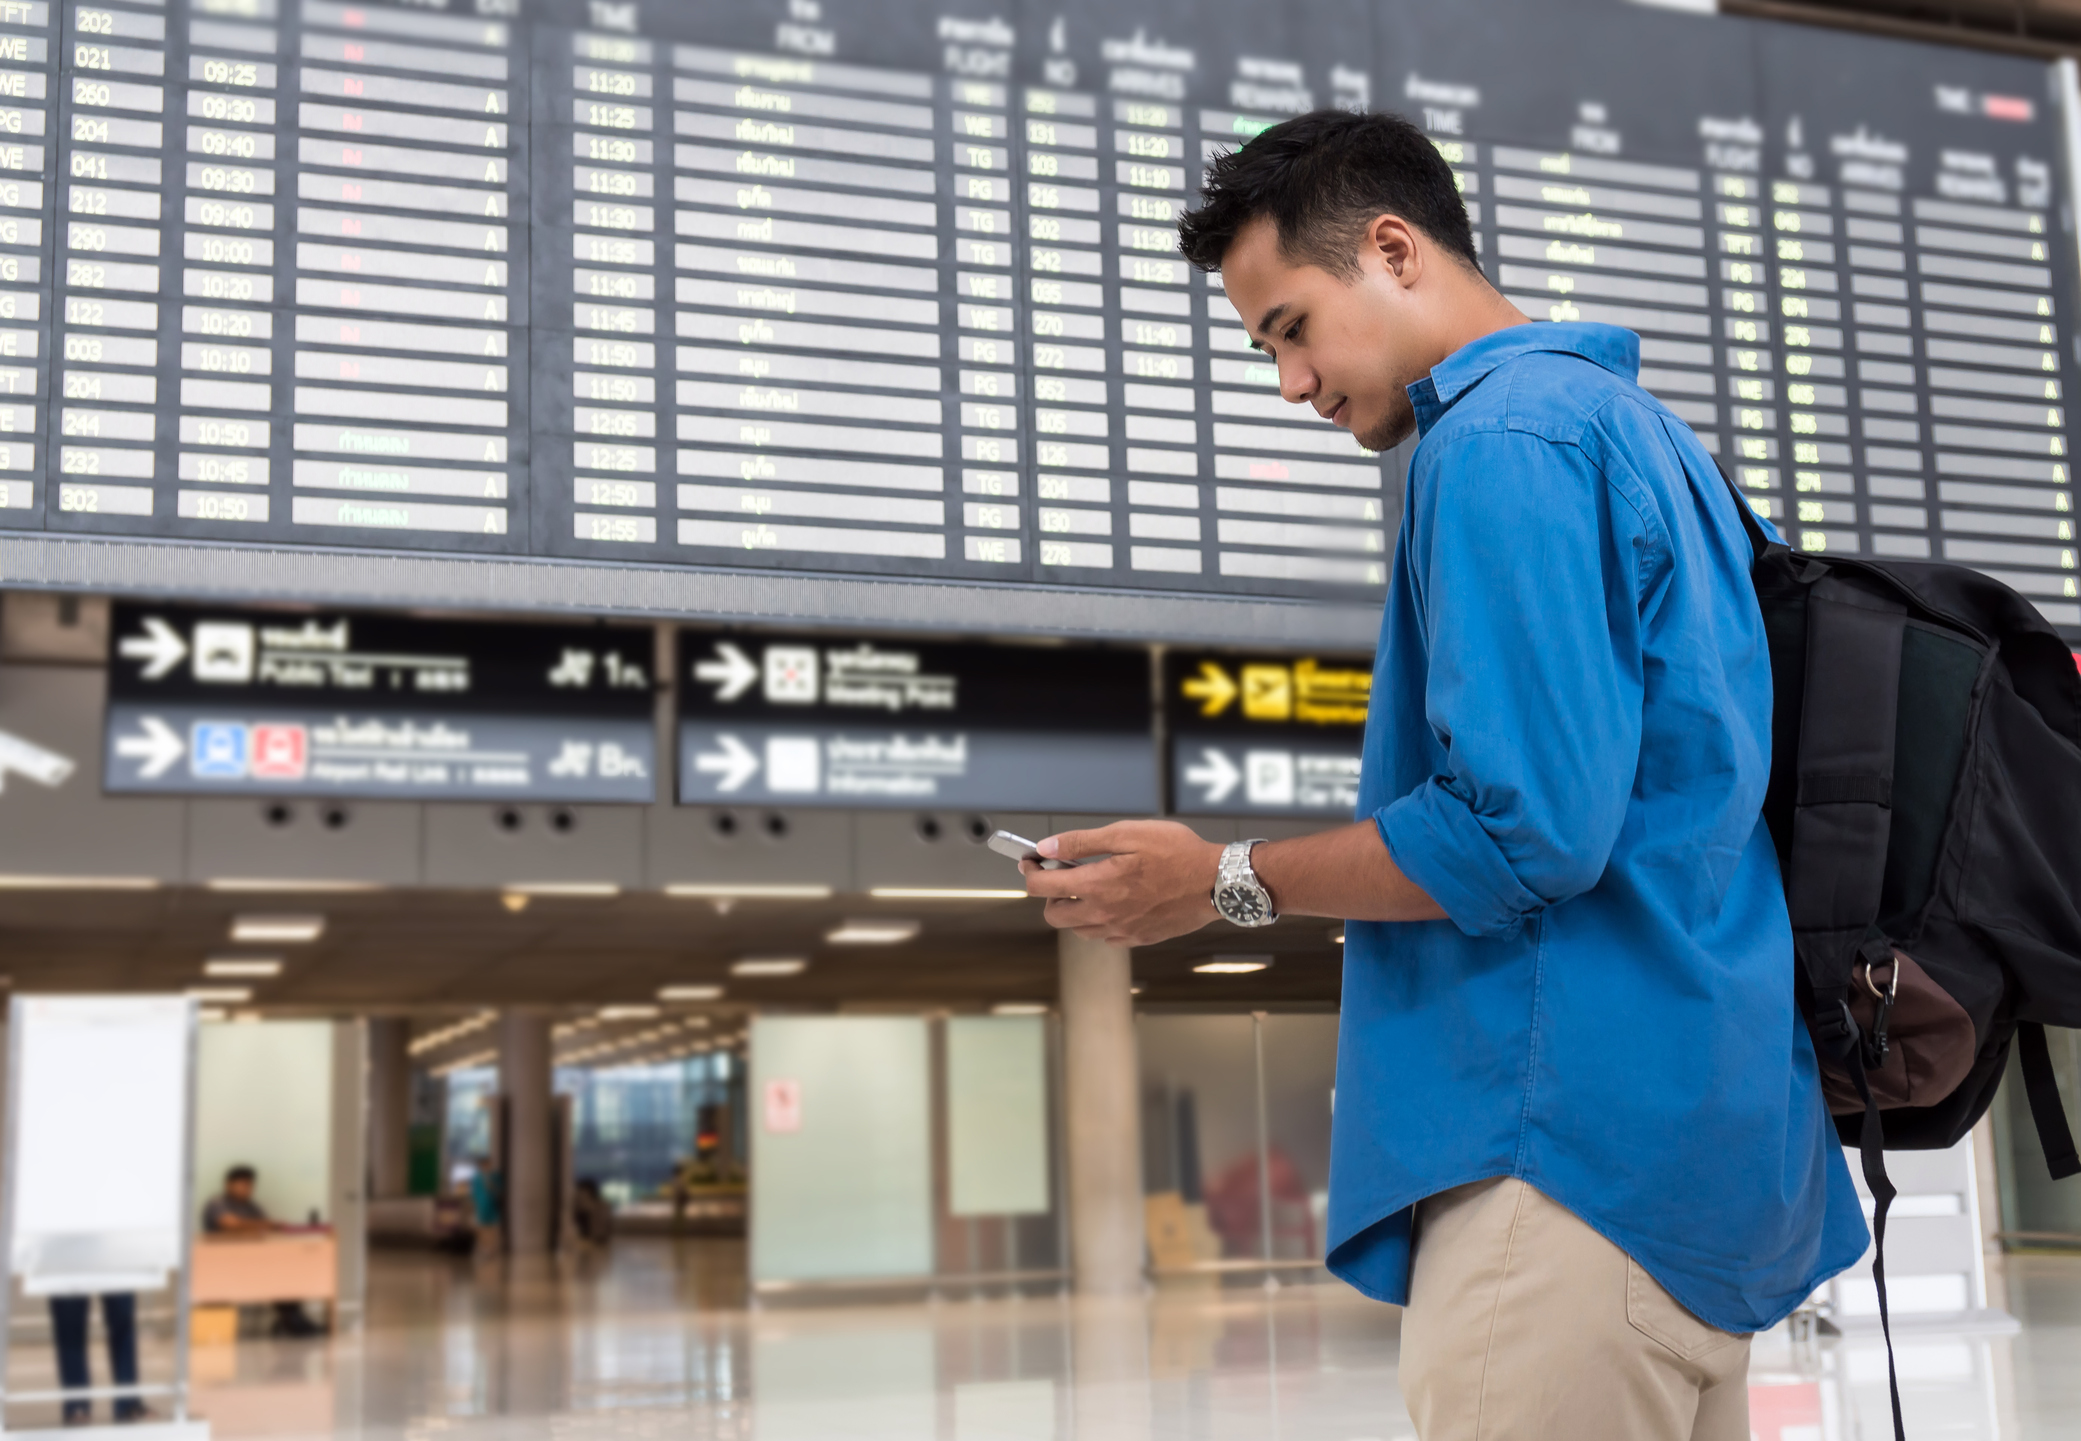 Asian traveler using the smart mobile phone for check-in at the flight information screen in modern an airport, travel and transportation with technology concept.